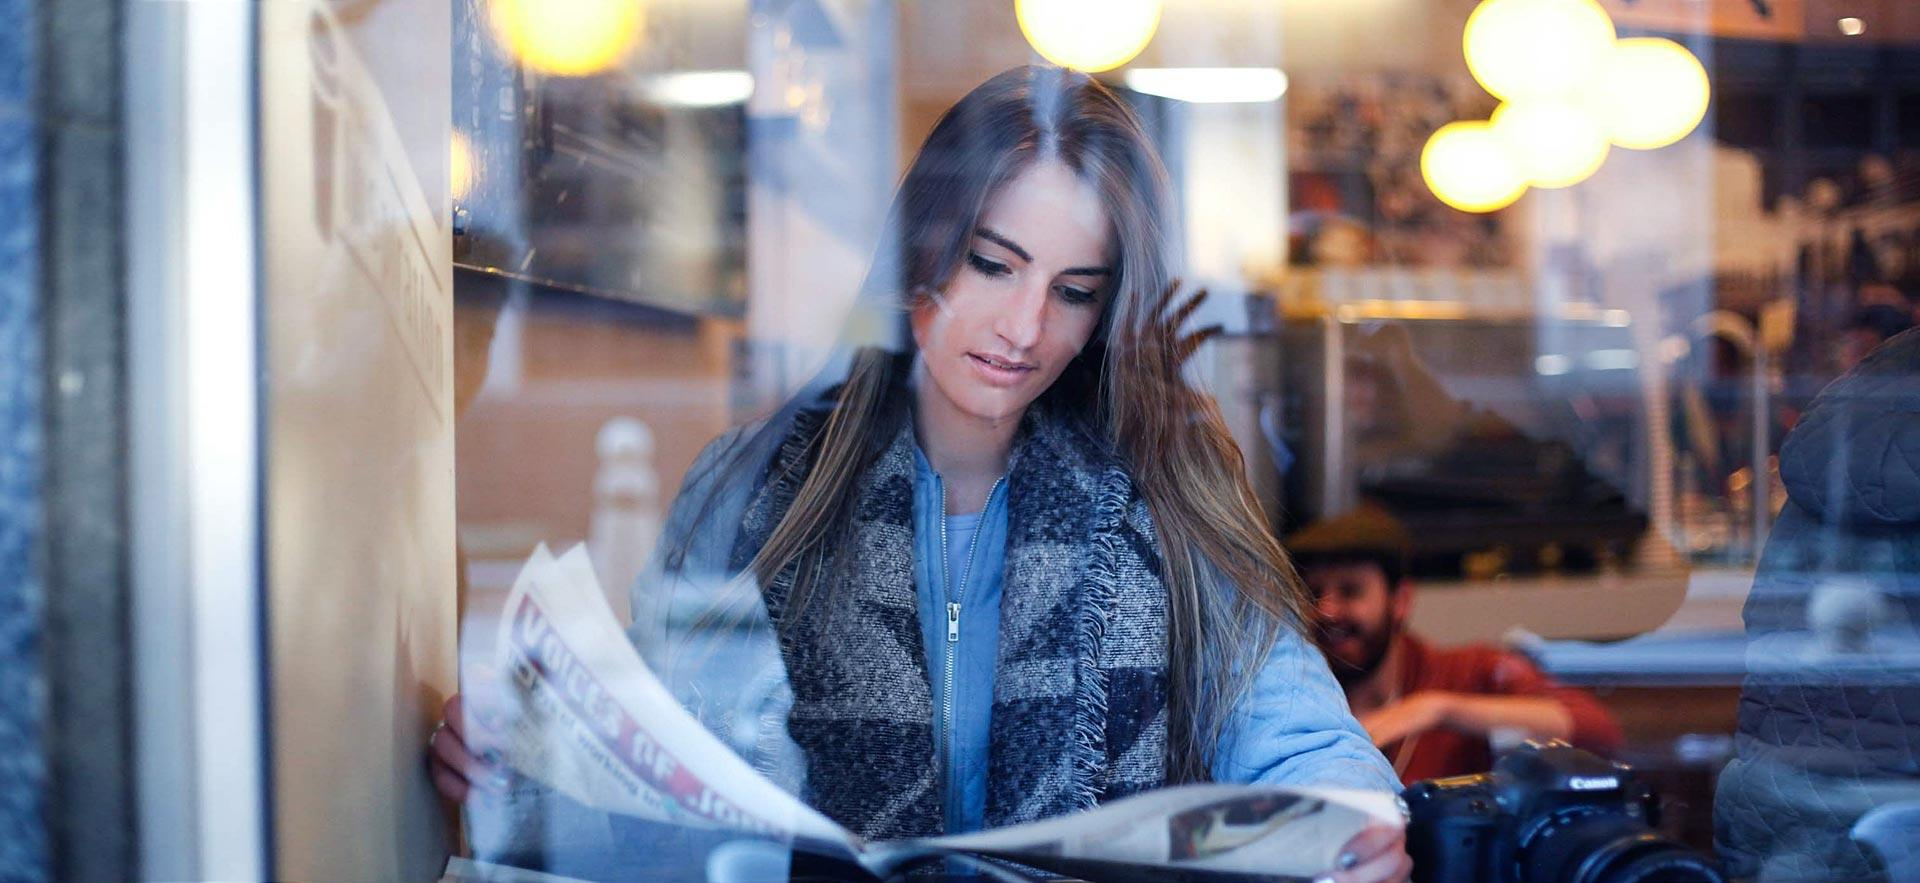 Young woman reding a newspaper in a cafe.